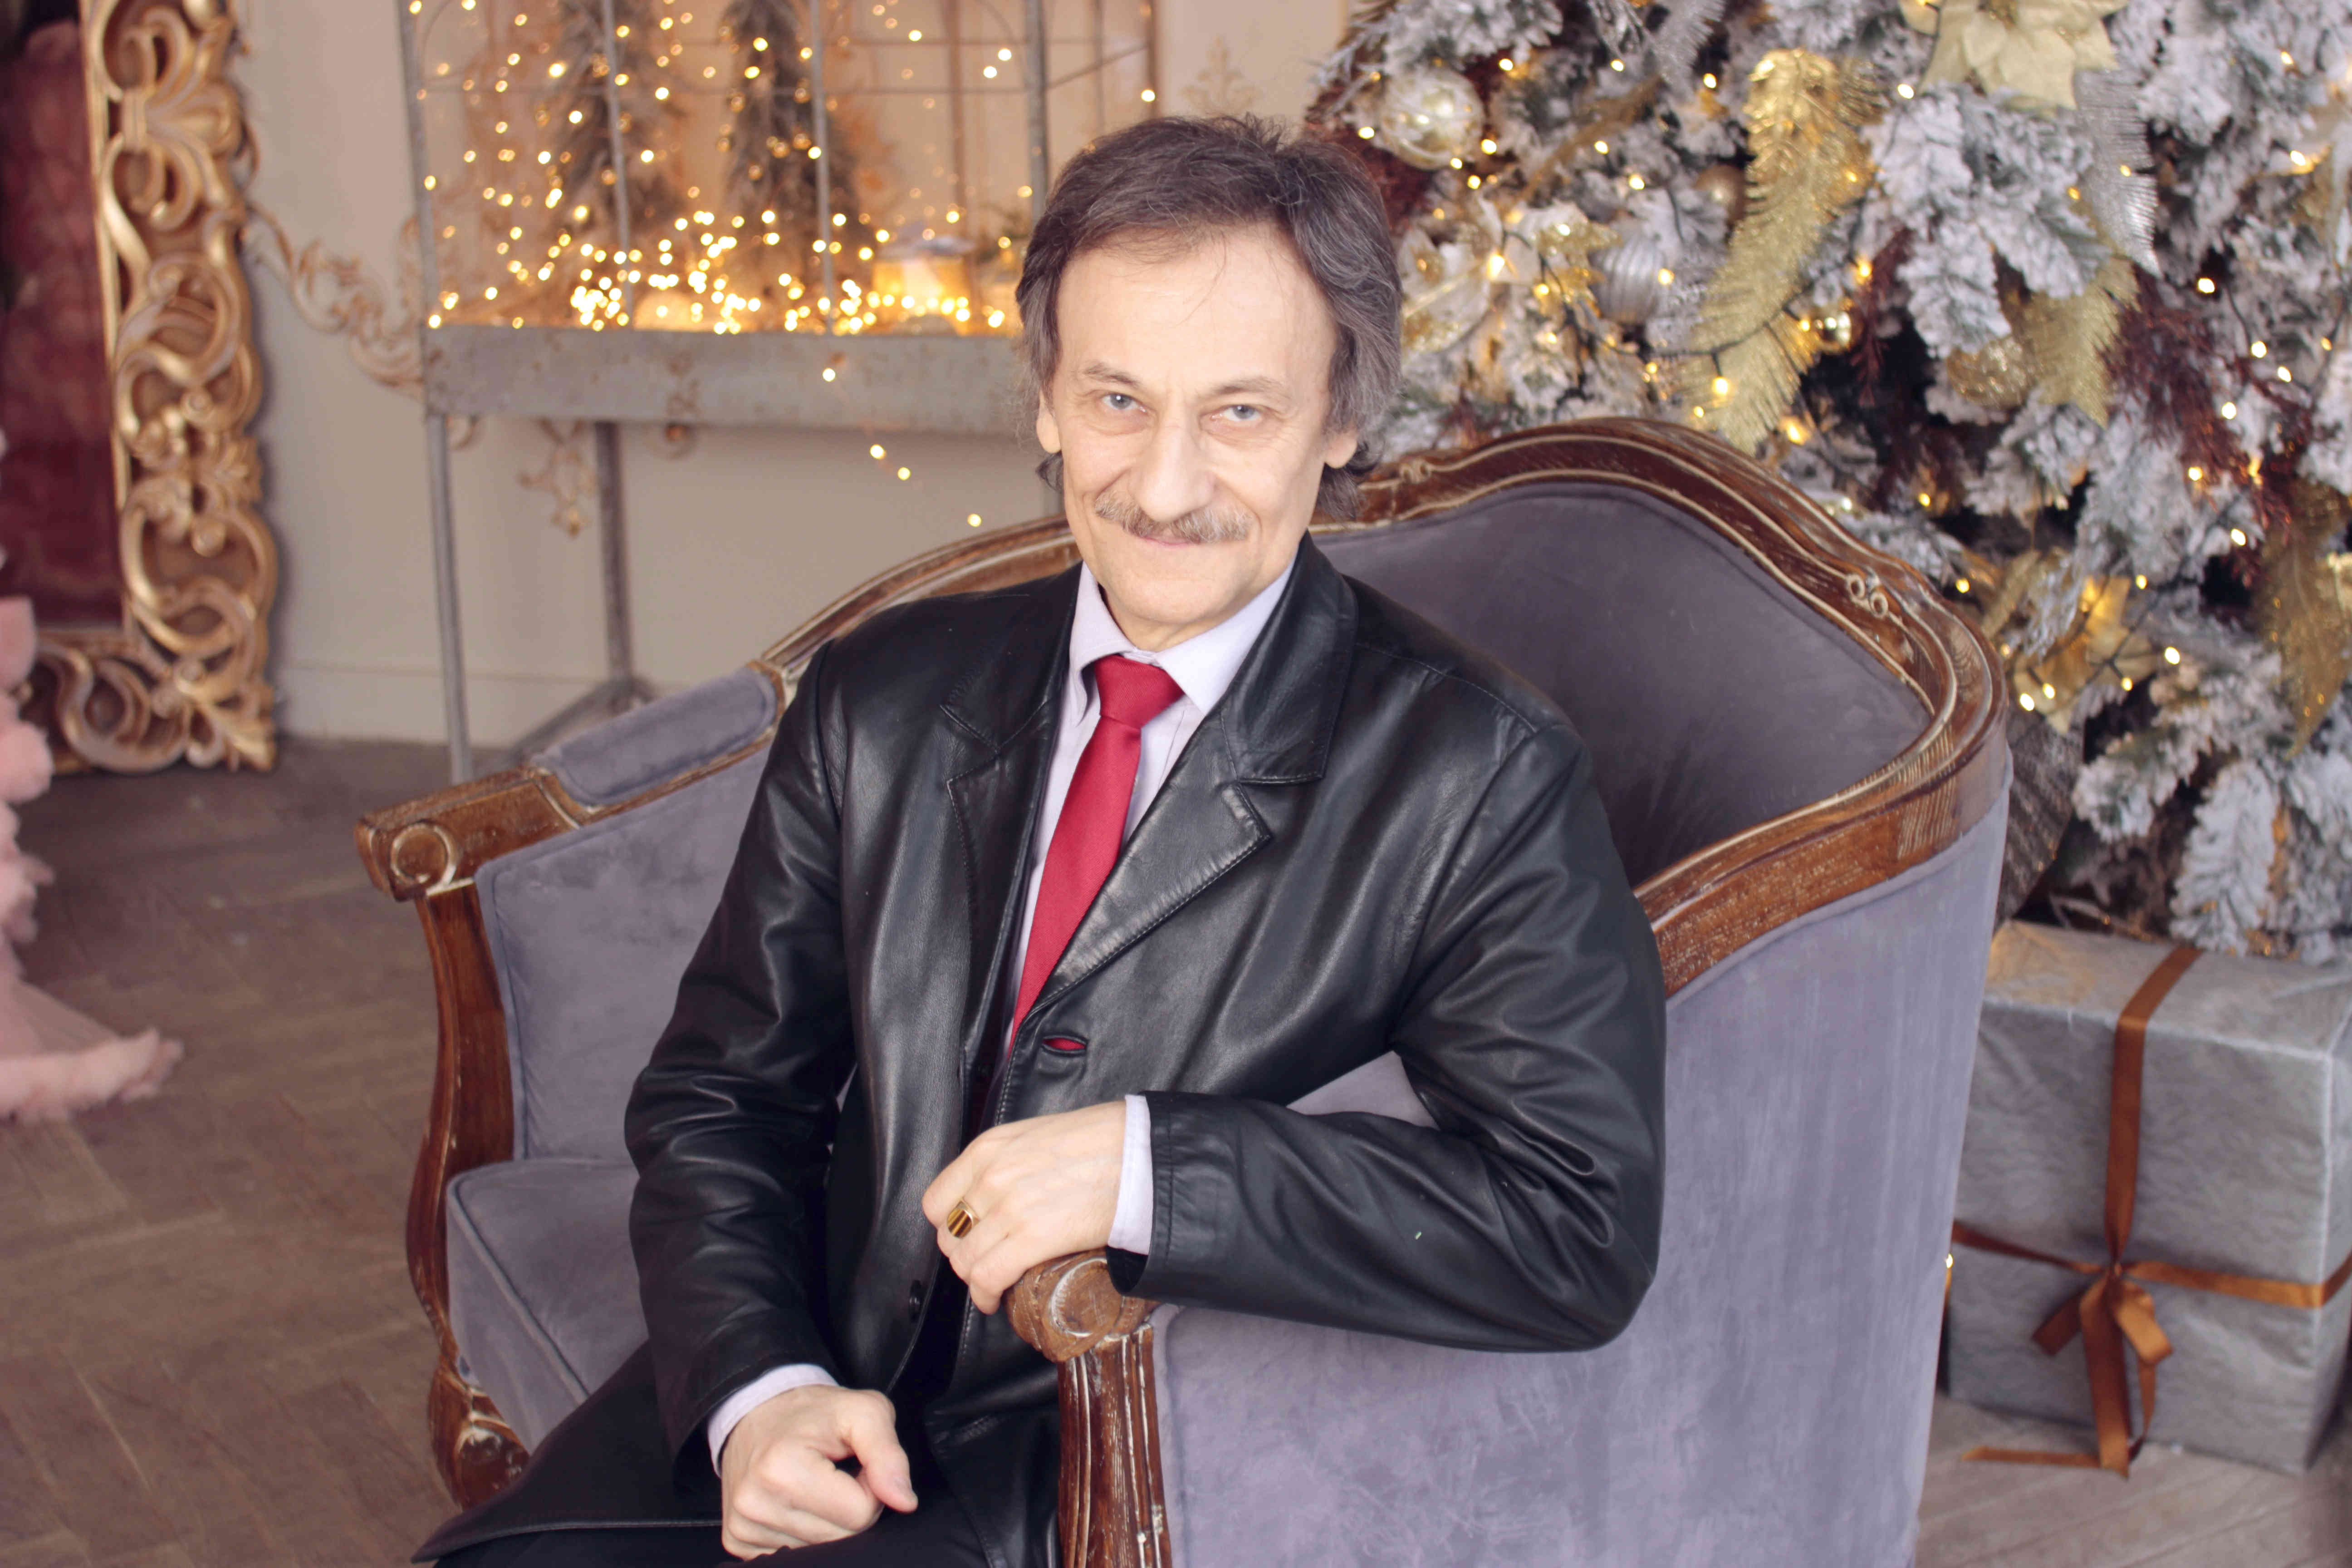 Alexander Saveliev: The difference between living and inanimate is established objectively